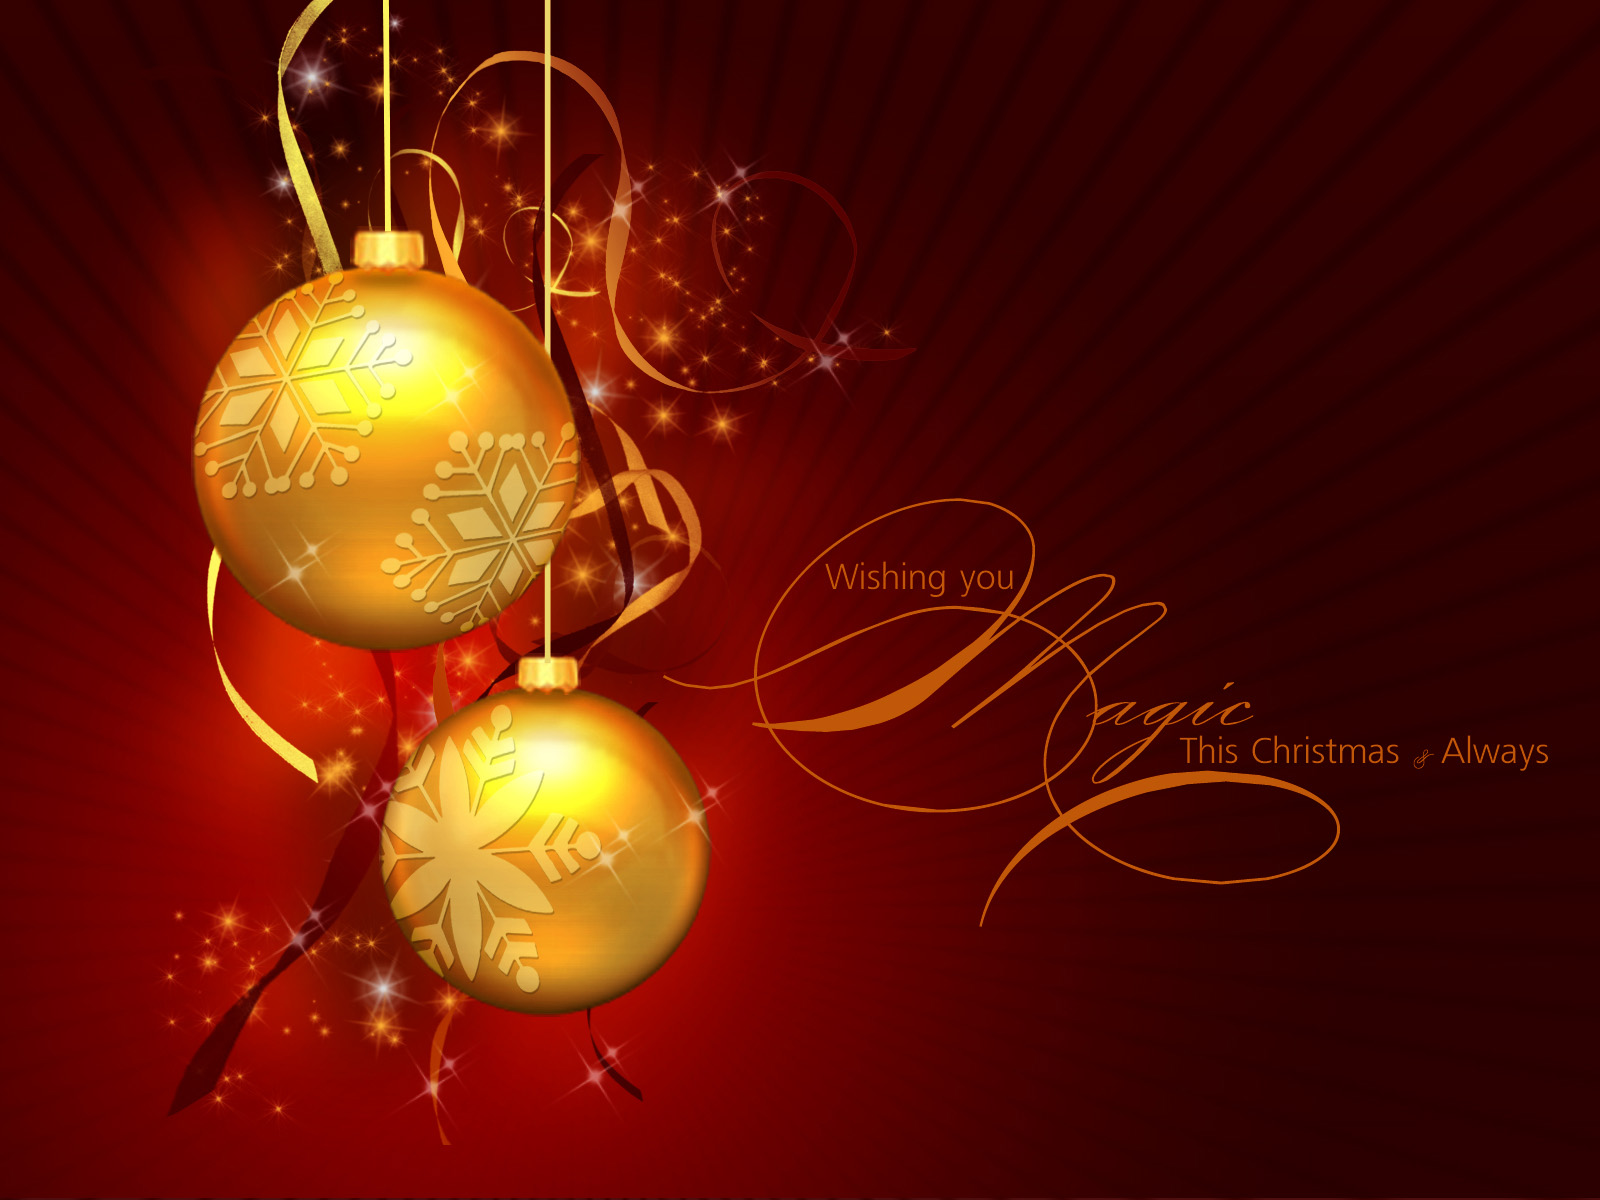 wallpapers animated christmas wallpapers free3d christmas wallpapers 1600x1200